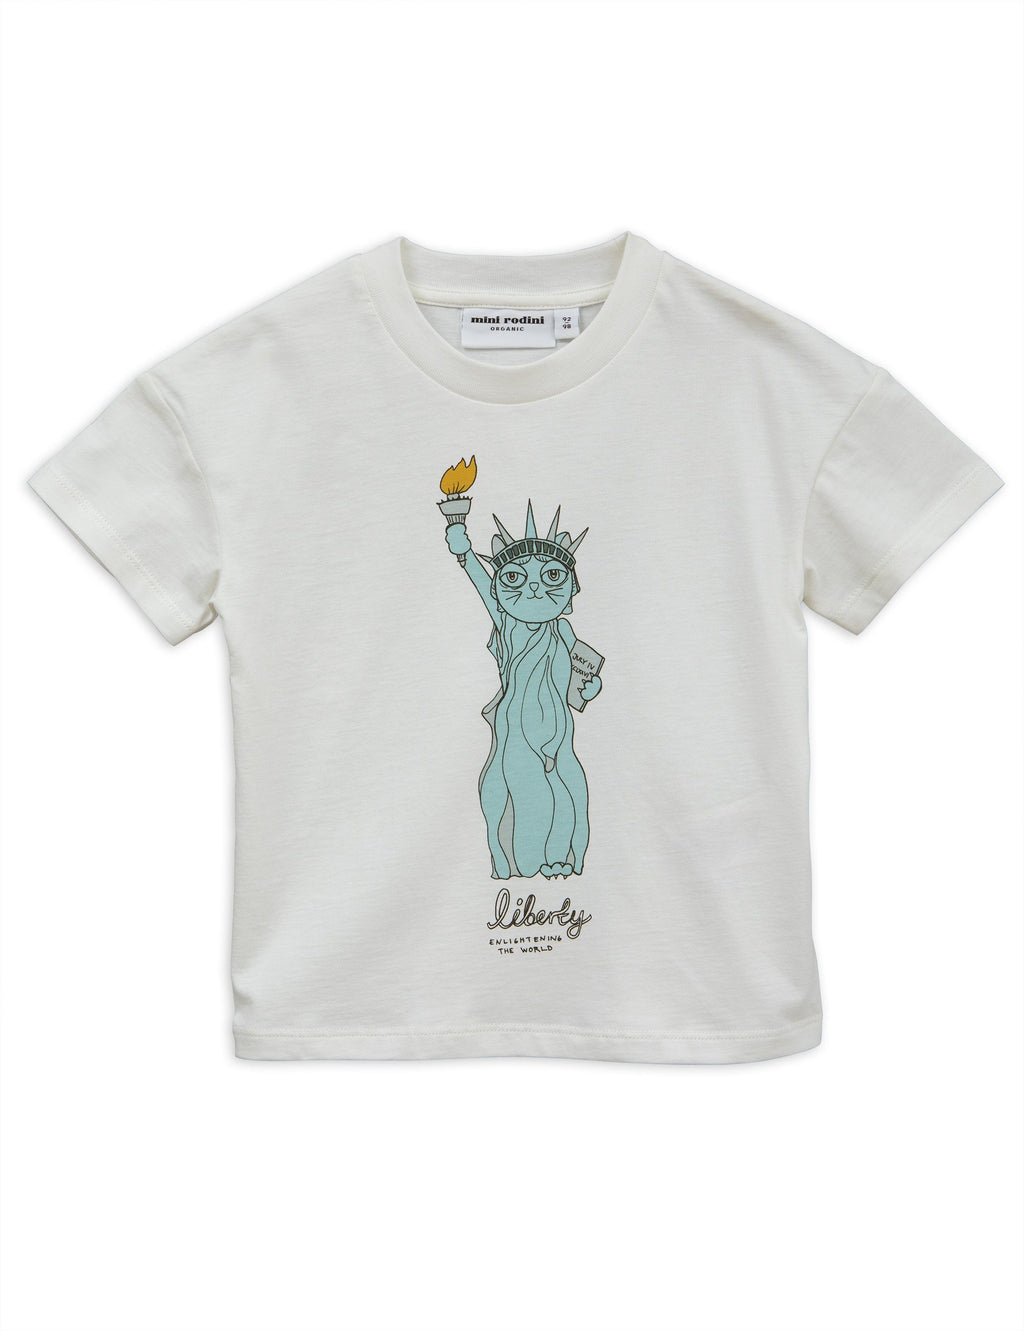 Liberty t-shirt Mini Rodini